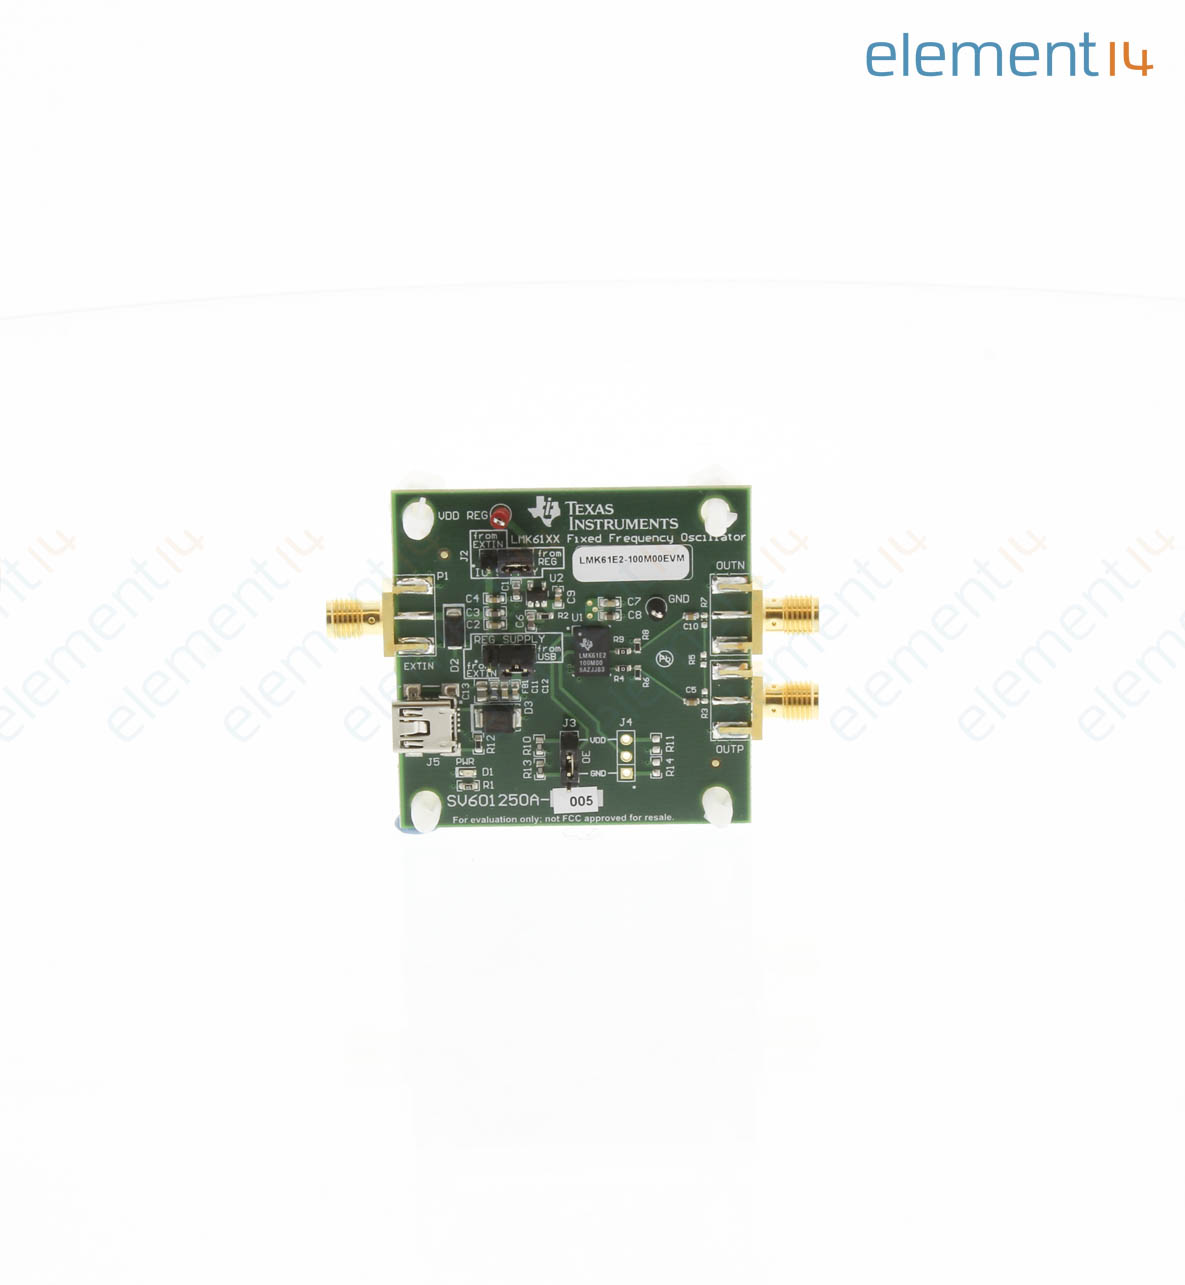 Lmk61e2 100m00evm Texas Instruments Evaluation Board Ultra Low Circuit We Assemble With The Exception Of Rohscompliant Boards